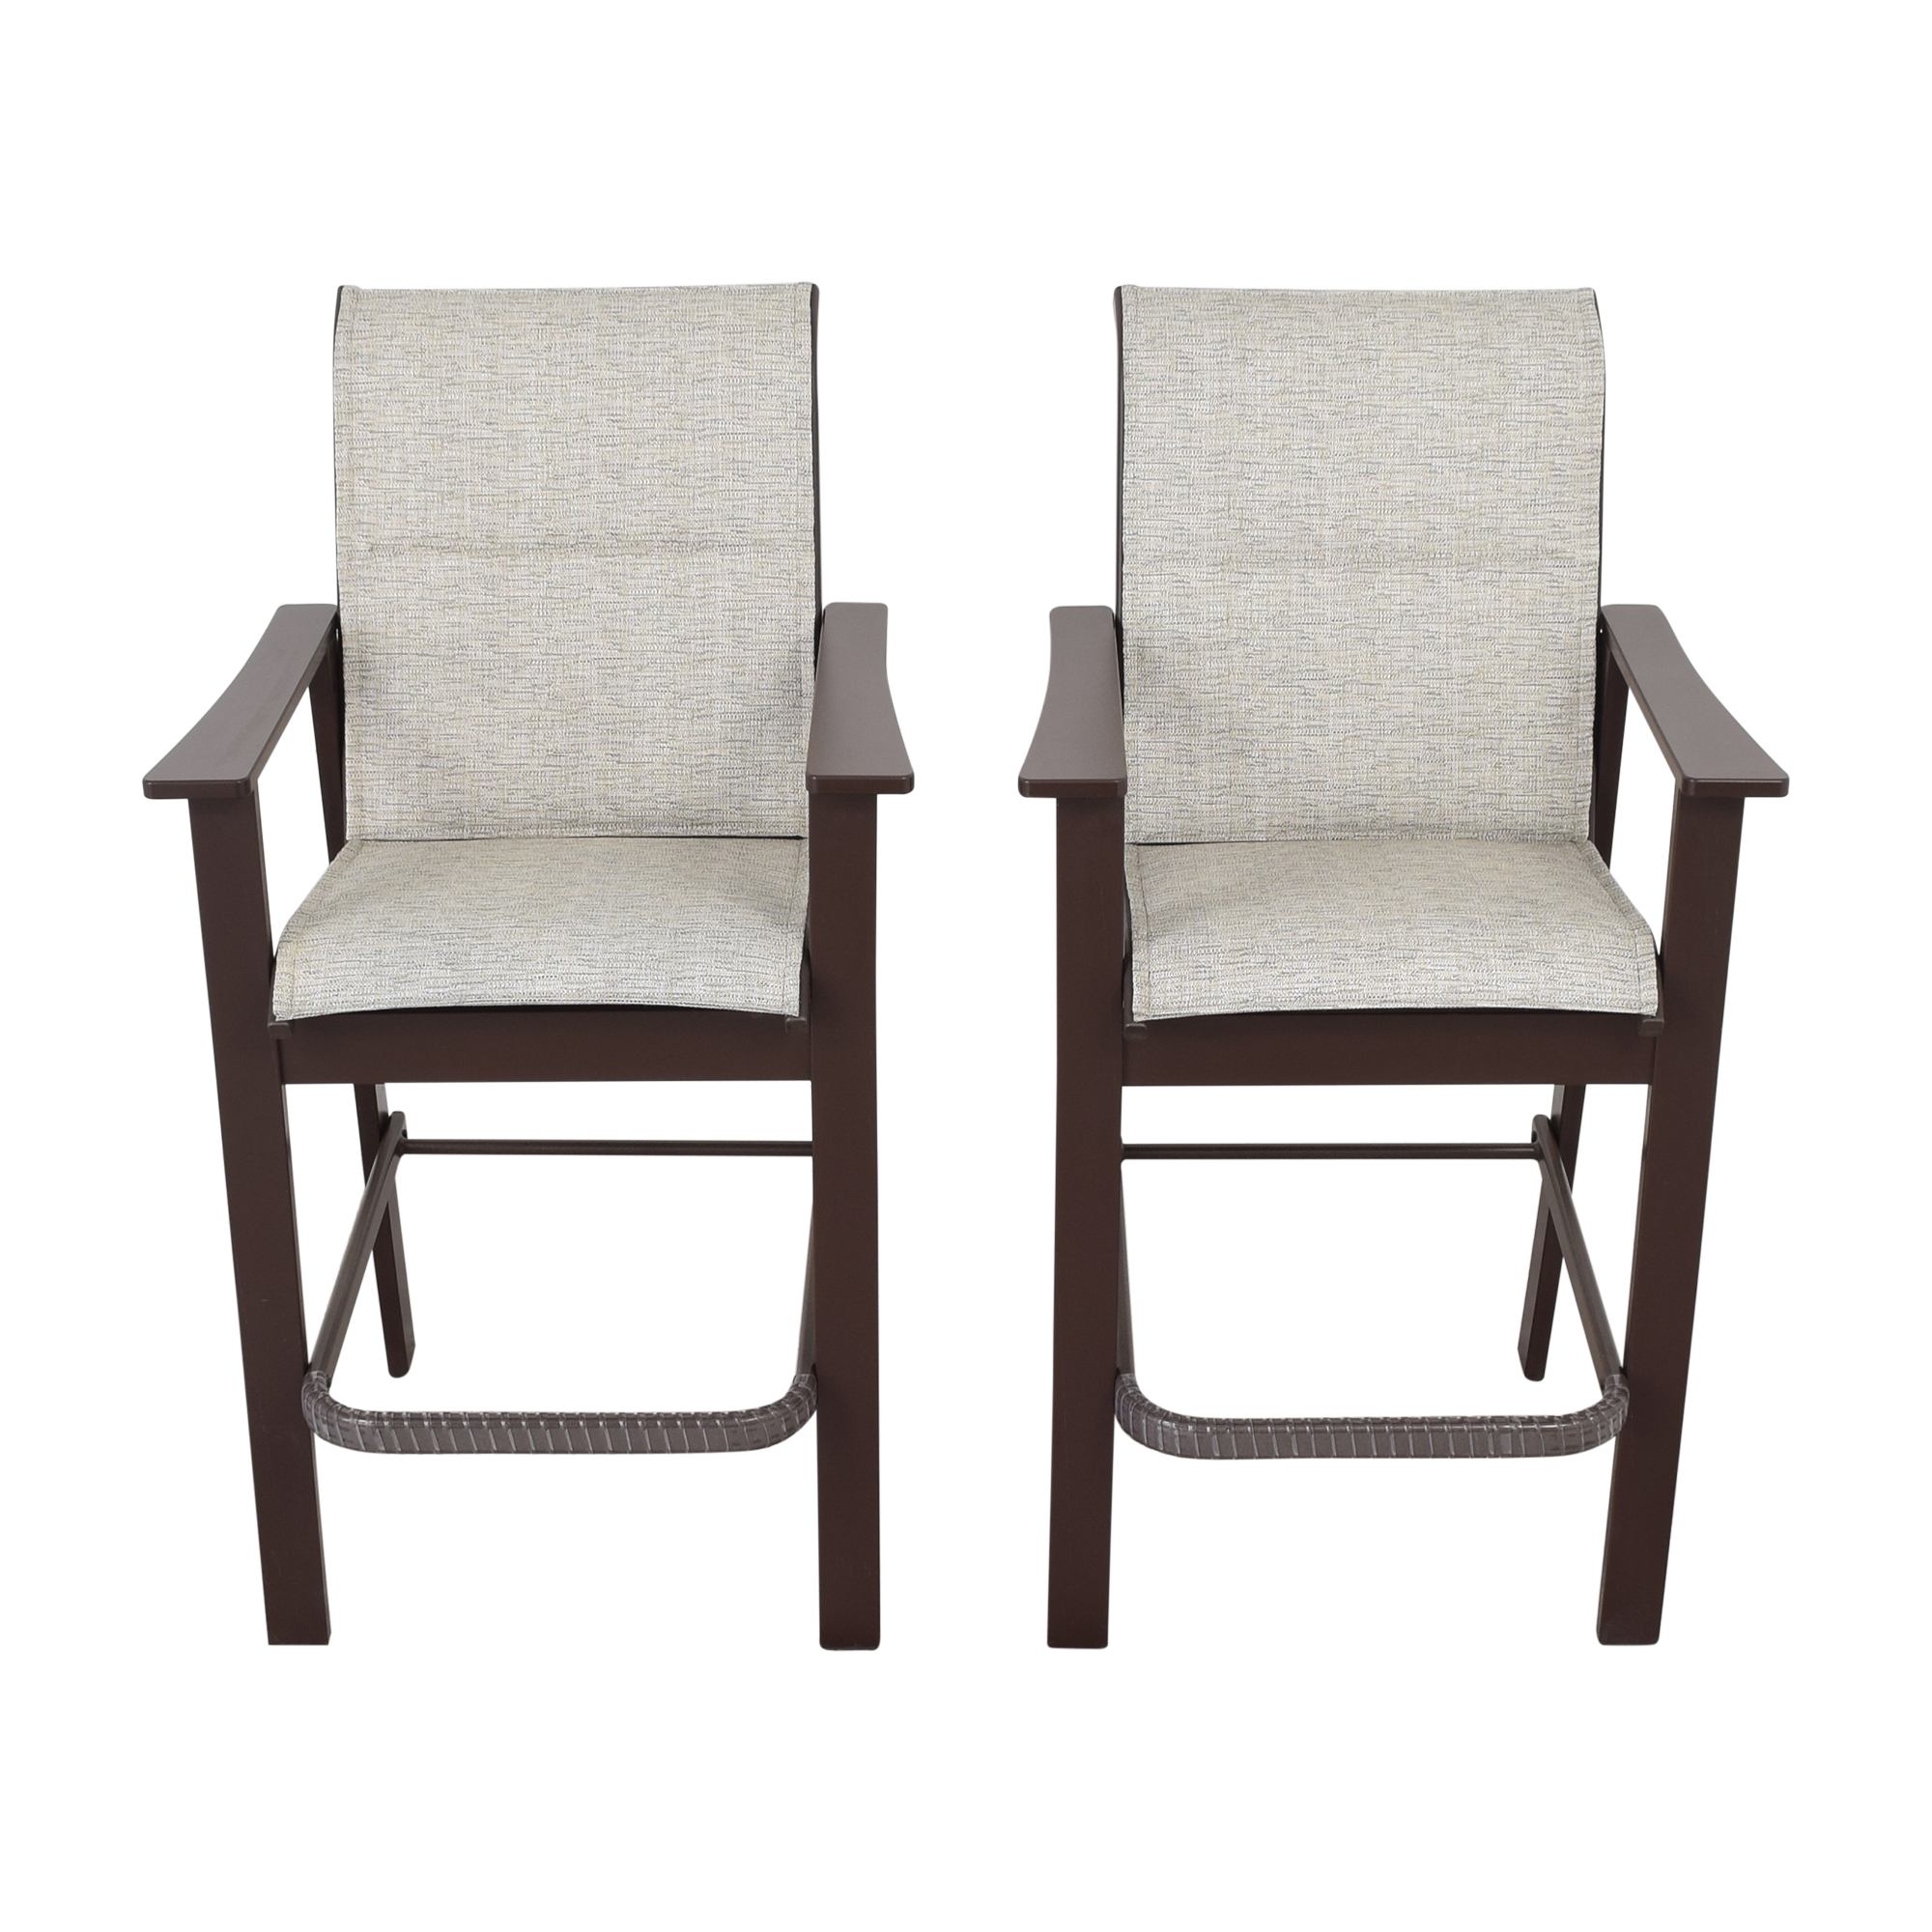 buy Windward Design Group Windward Design Group High Dining Chairs online